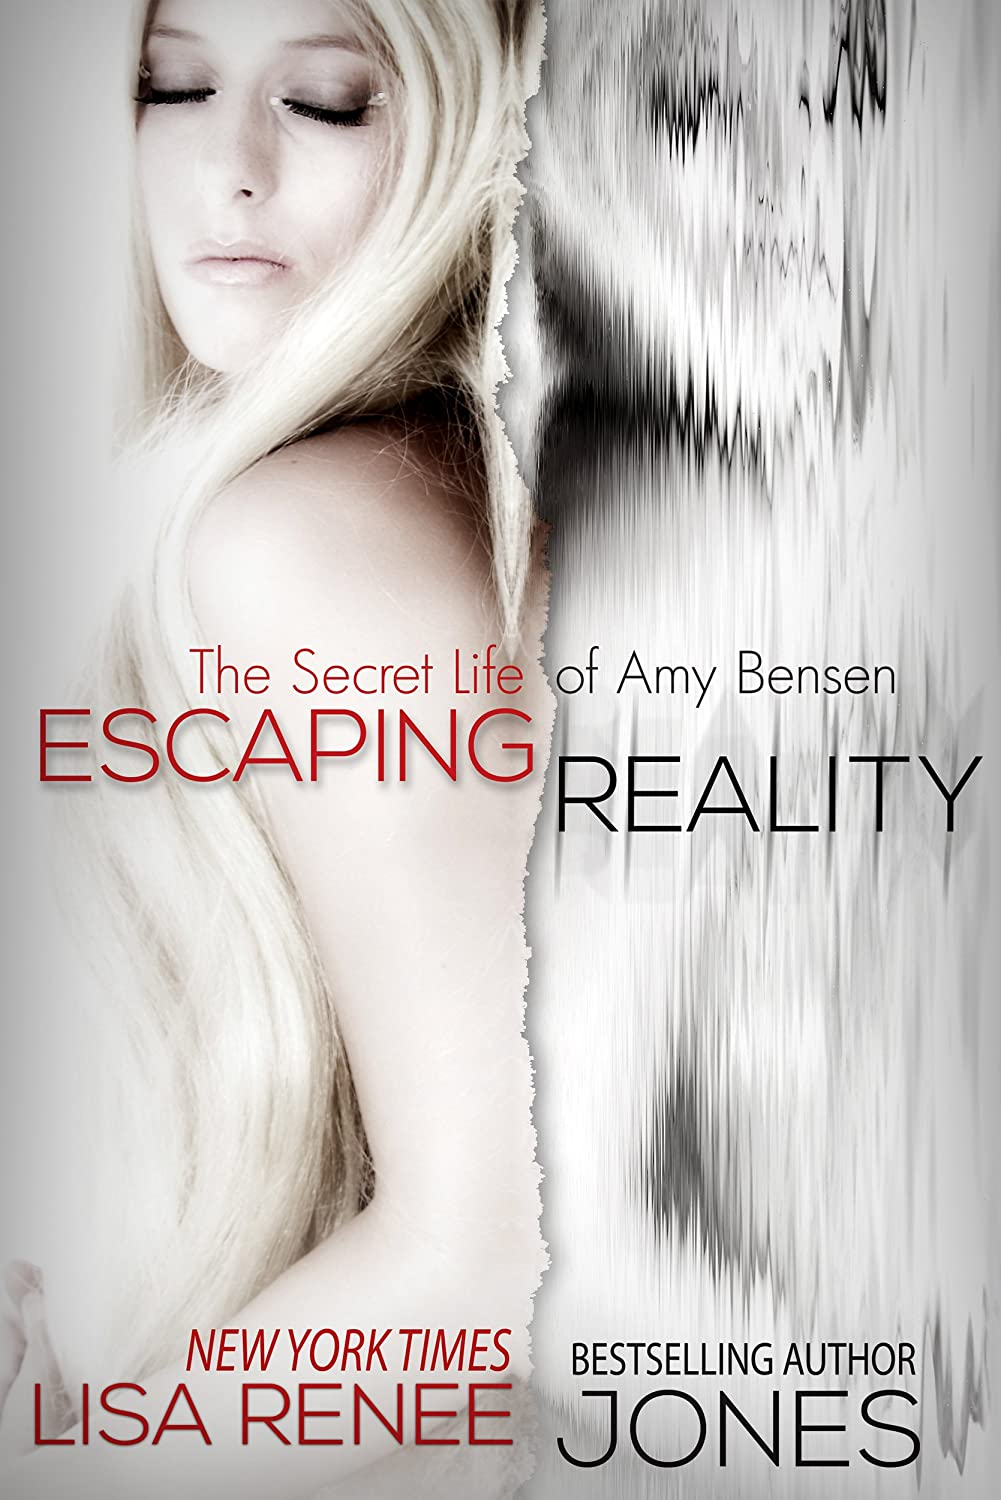 REVIEW: Escaping Reality by Lisa Renee Jones